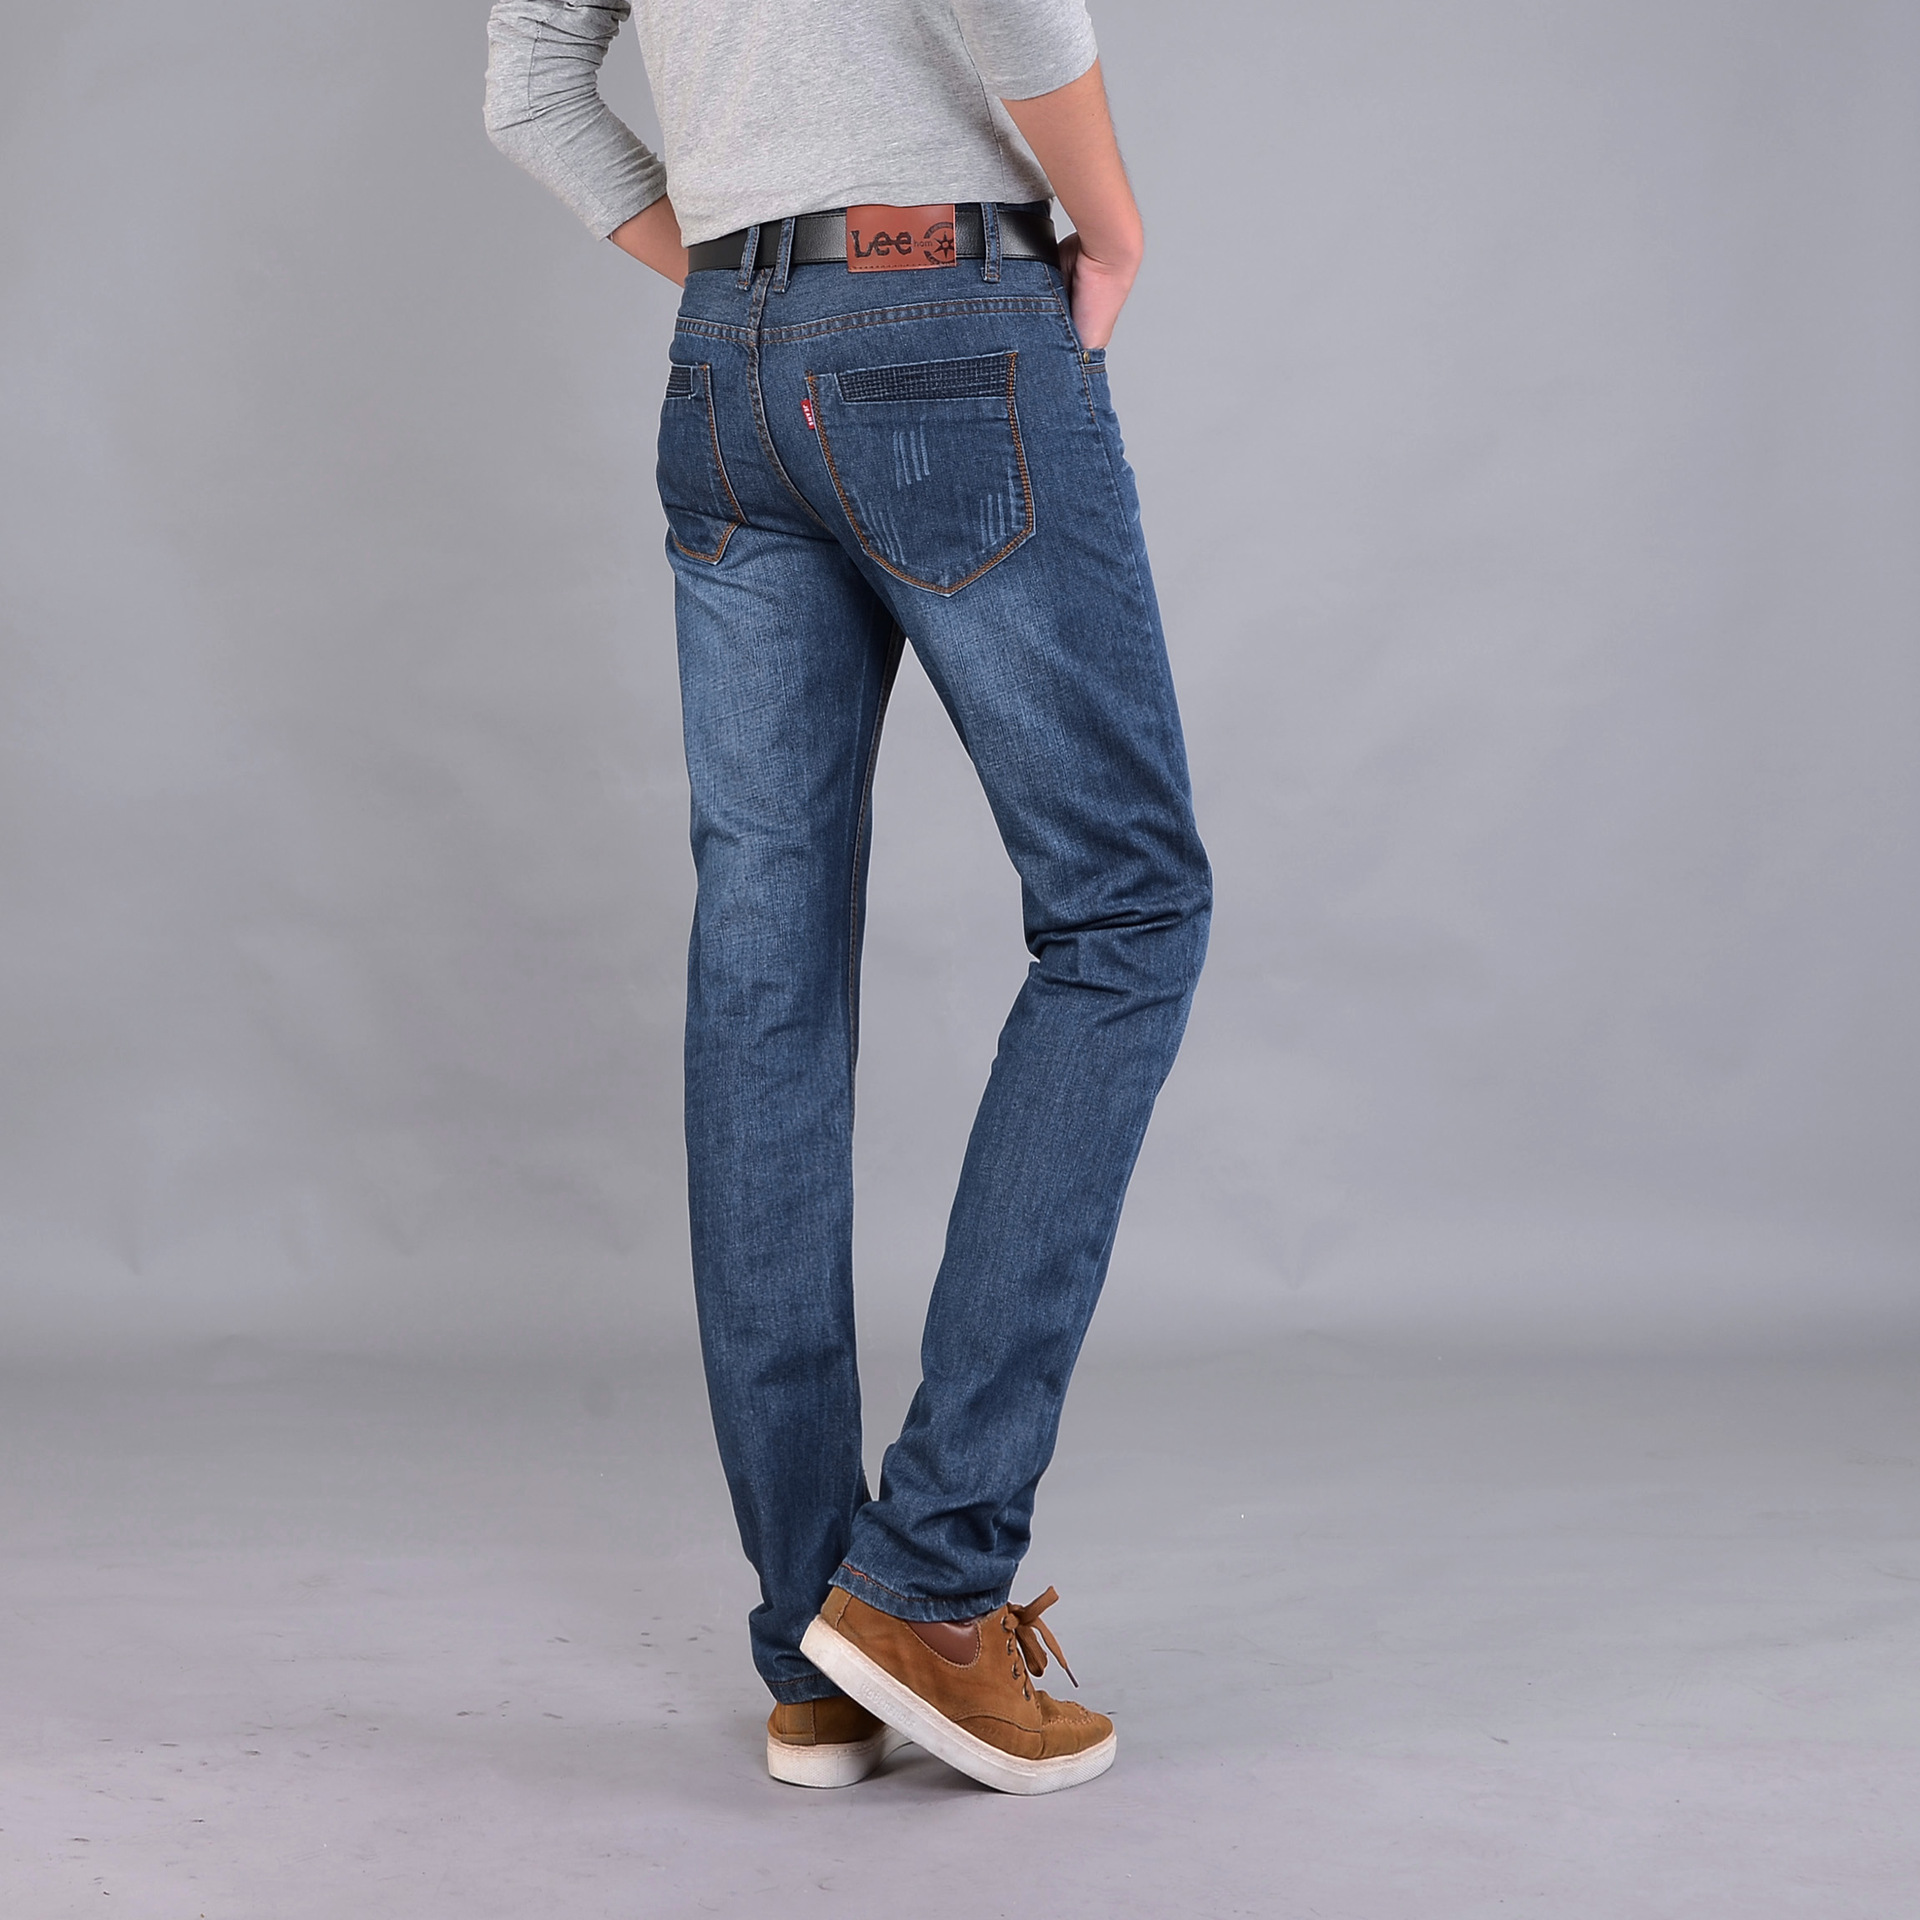 New Style Fashion Casual Jeans Men's Cool Straight-Cut Four Seasons Paragraph Trousers MEN'S Jeans